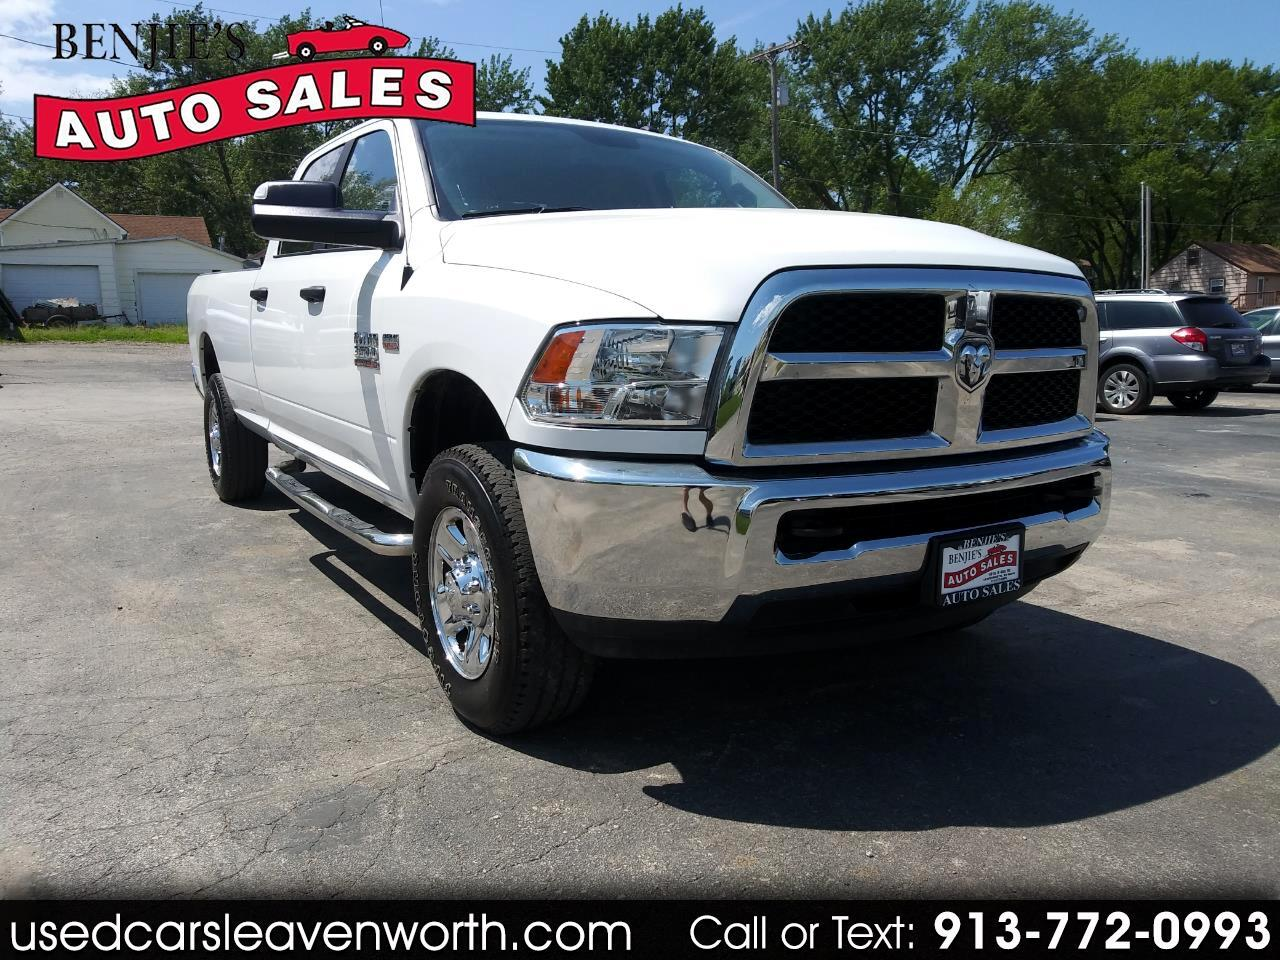 Dodge Ram Truck Bed For Sale >> Used 2018 Dodge Ram Pickup 3500 Slt Quad Cab Long Bed 4wd